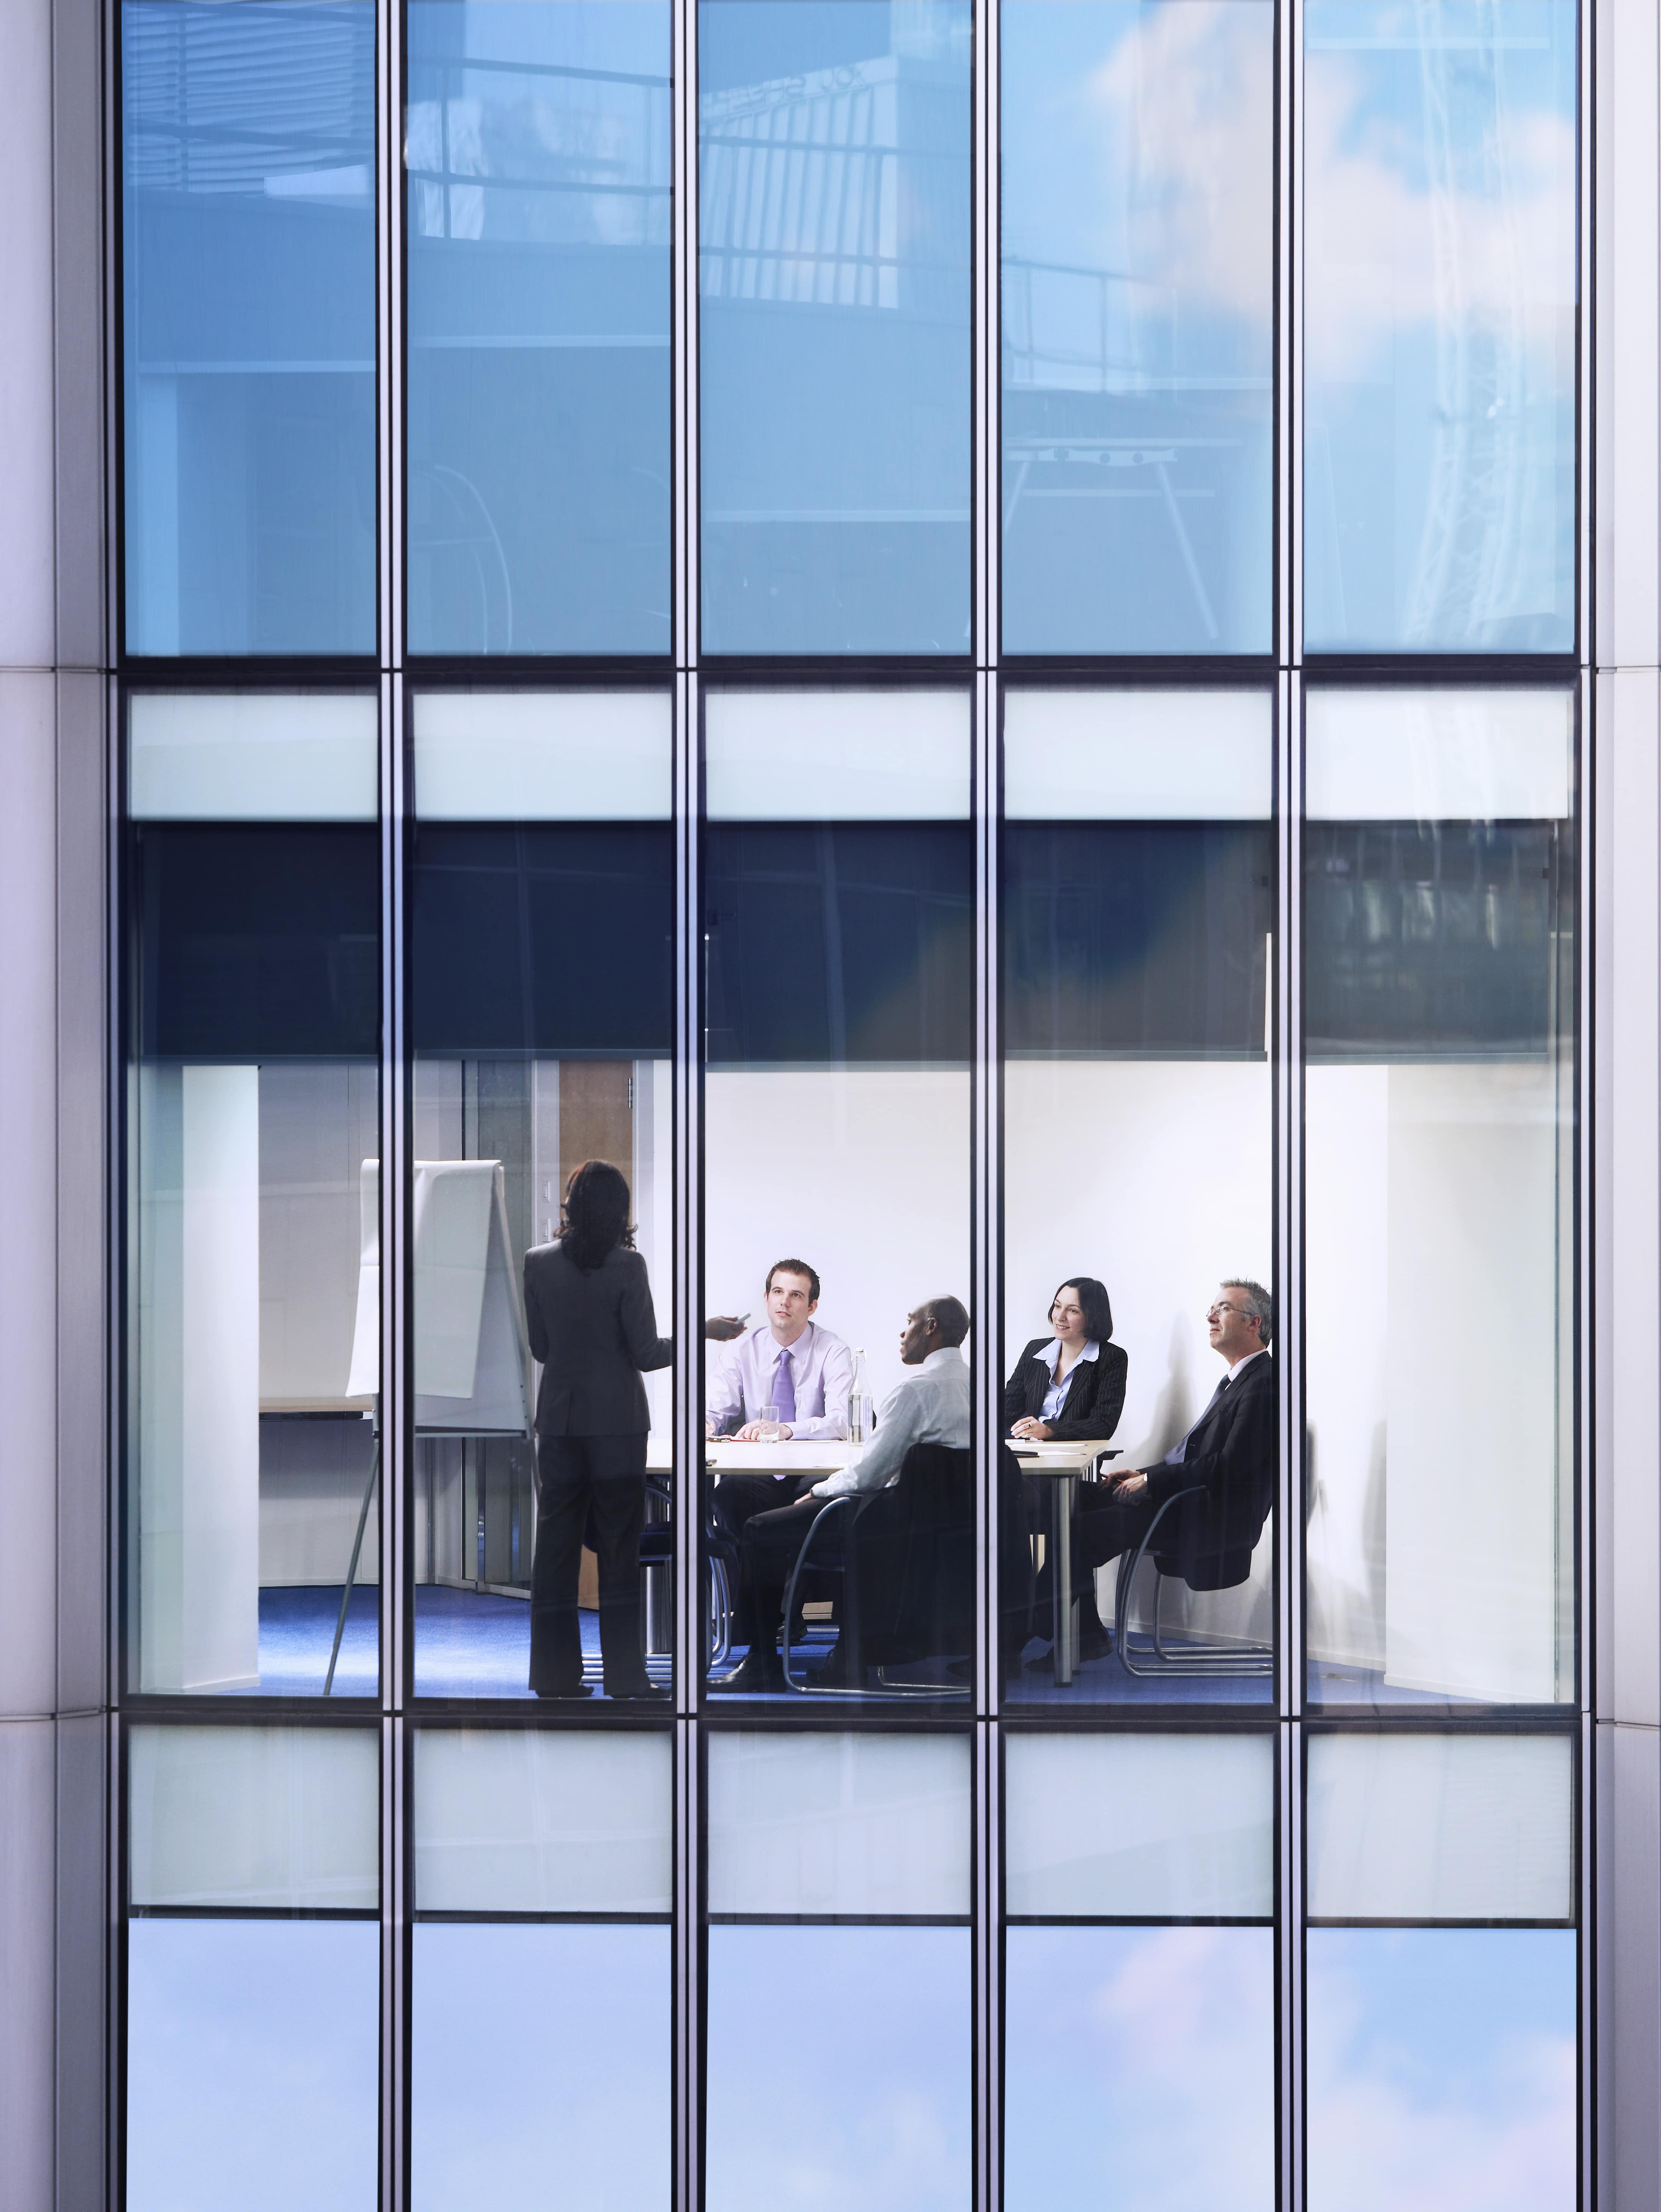 Image of a business meeting through a building window